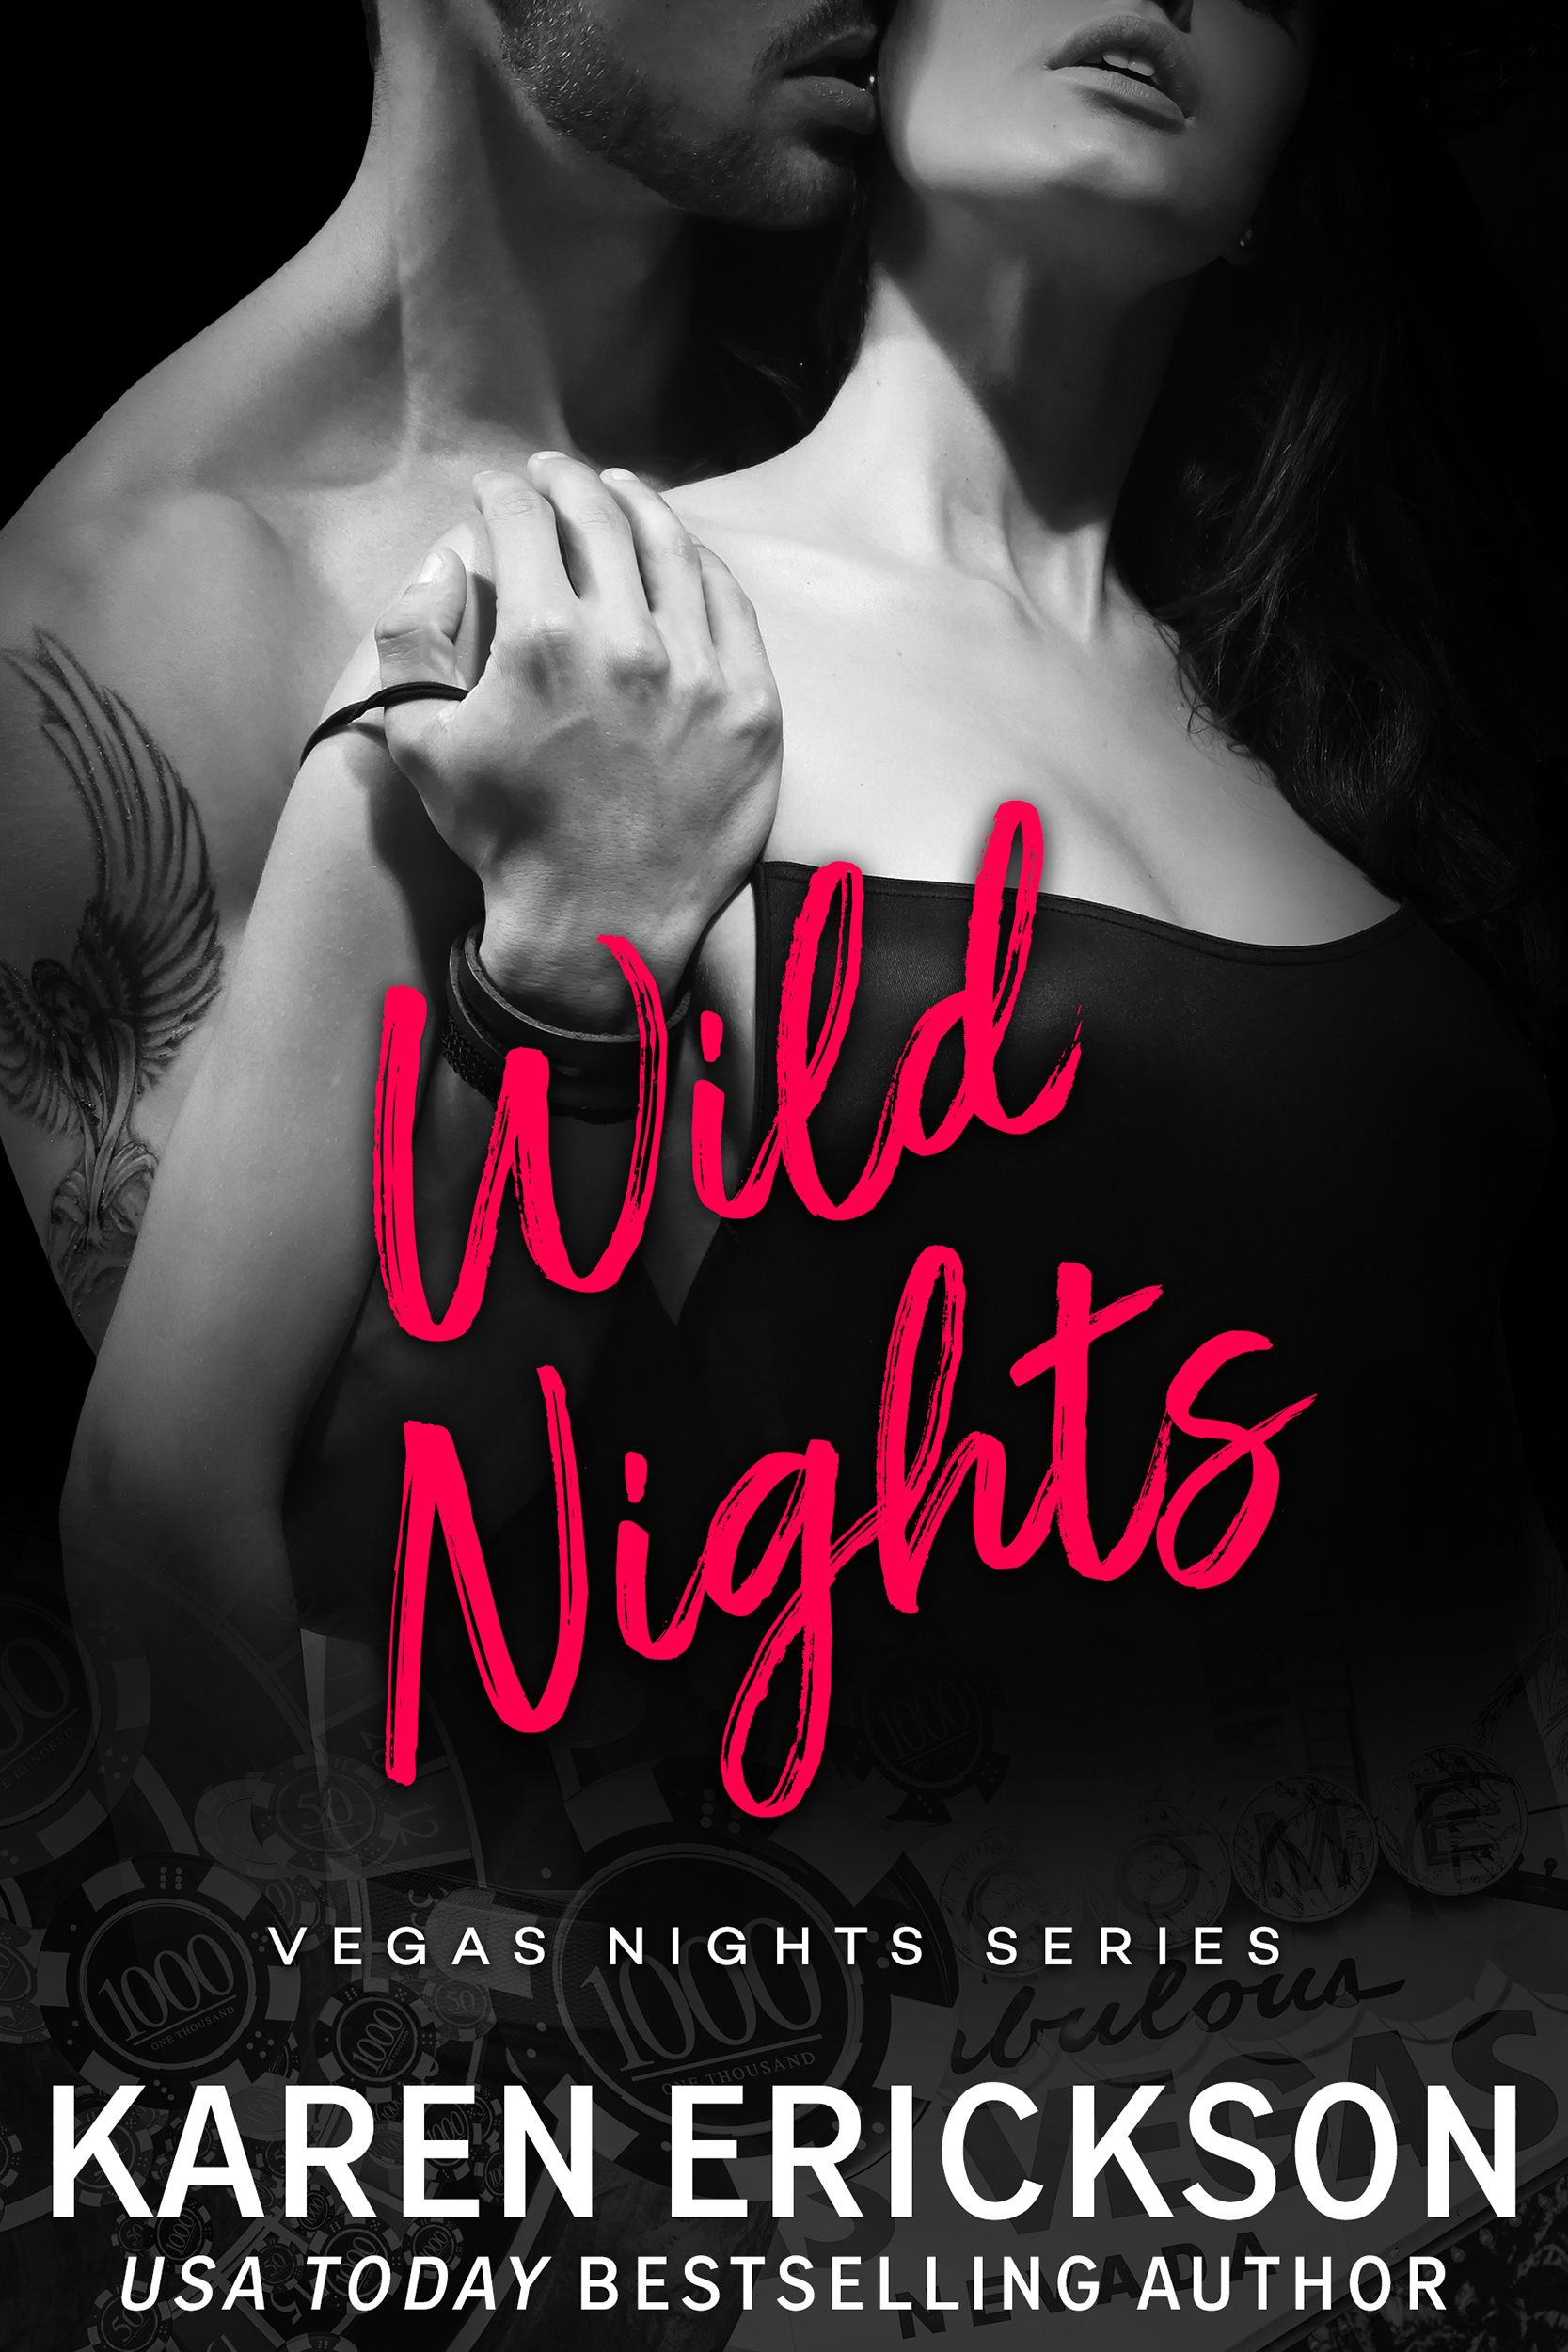 Wild Nights - Vegas Nights, Book 3AMAZON • B&N • IBOOKS • KOBO • GOOGLEPLAYThere are no limits in Vegas…Natalie's girls-weekend went bust as soon as her friends walked into the party.Running into a rock star—literally—might just be exactly what she needs to have a little fun of her own. Her drink's dripping down his chest, and it's all she can do resist licking it off.Noah Wilde doesn't believe in resisting urges. Not the one he has for the blue-eyed bombshell in front of him, cleaning him up. Not the one where the two of them ditch the party for an all-night adventure. And definitely not the one that has them testing out the very definition of Sin City.Until the sun rises, and resisting seems like the honorable choice. It could be over. Or it could be just the beginning.It's last call.